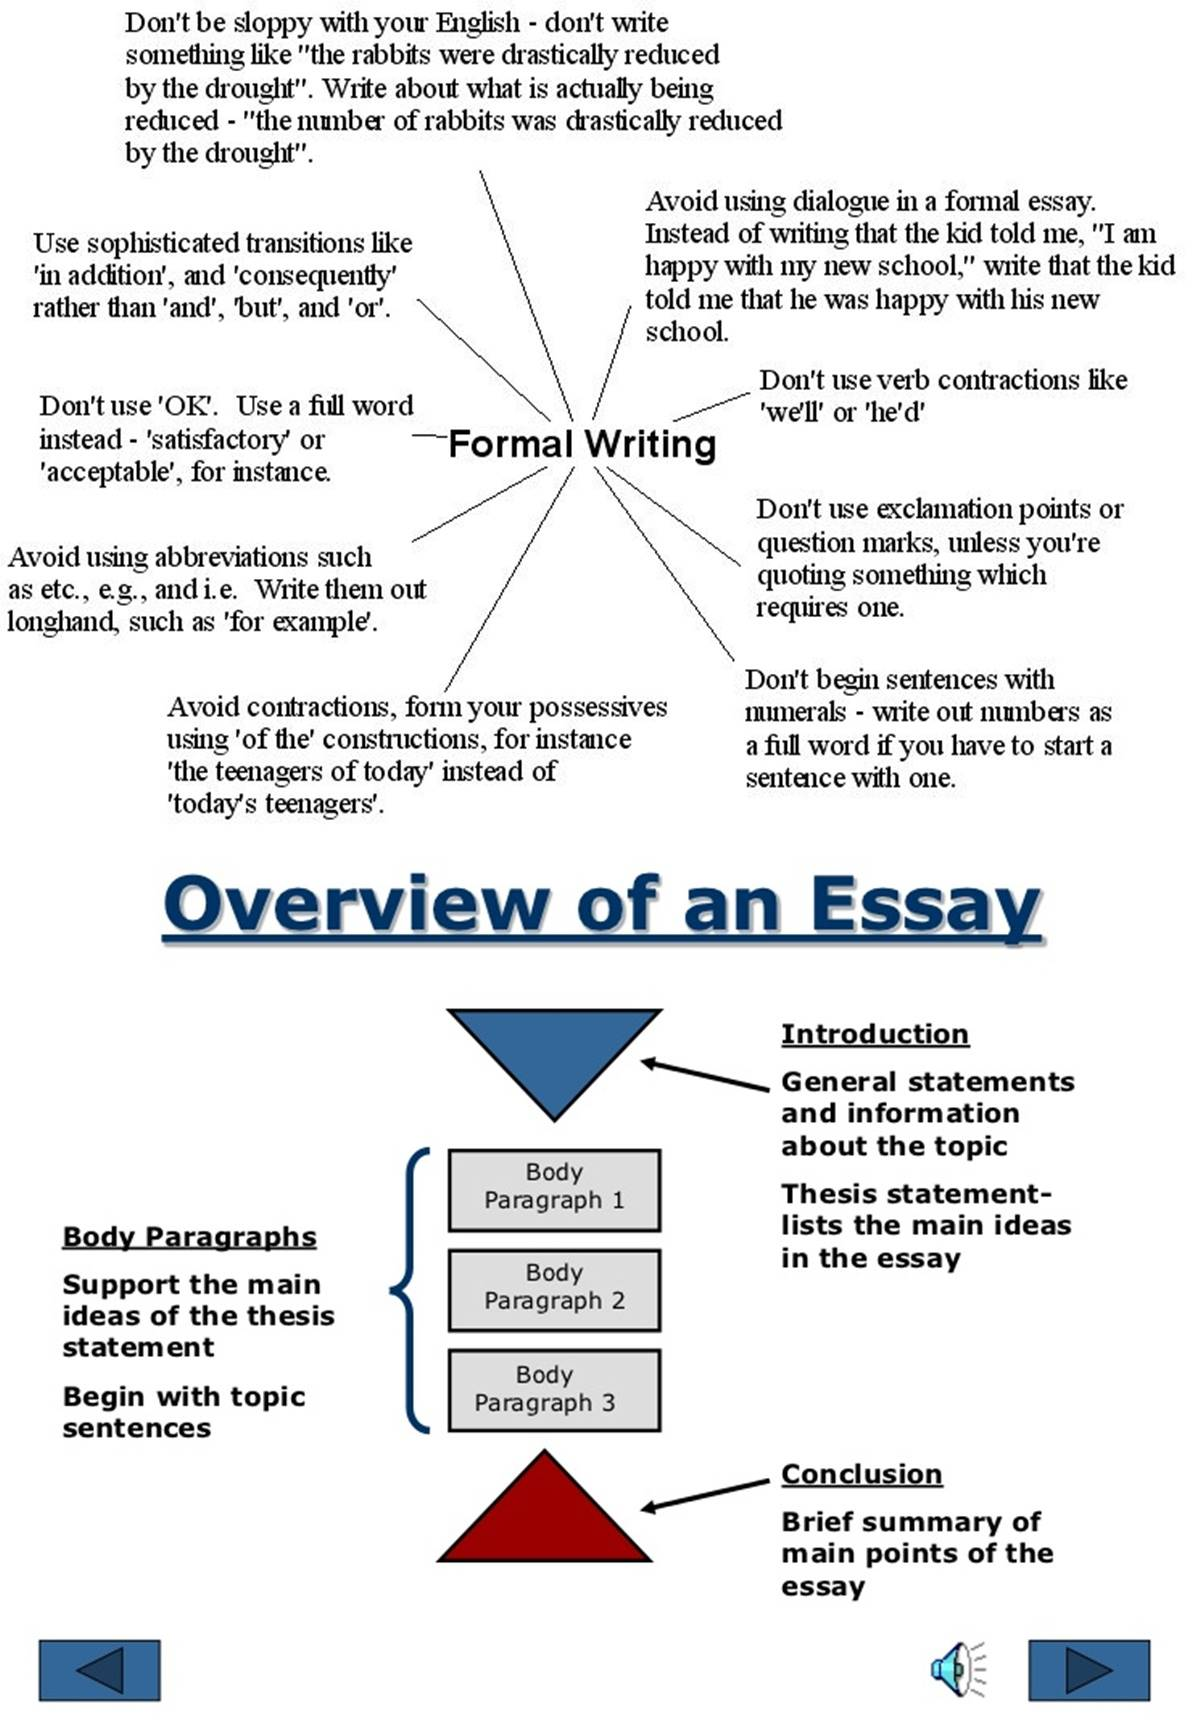 Strategic human resource management essay